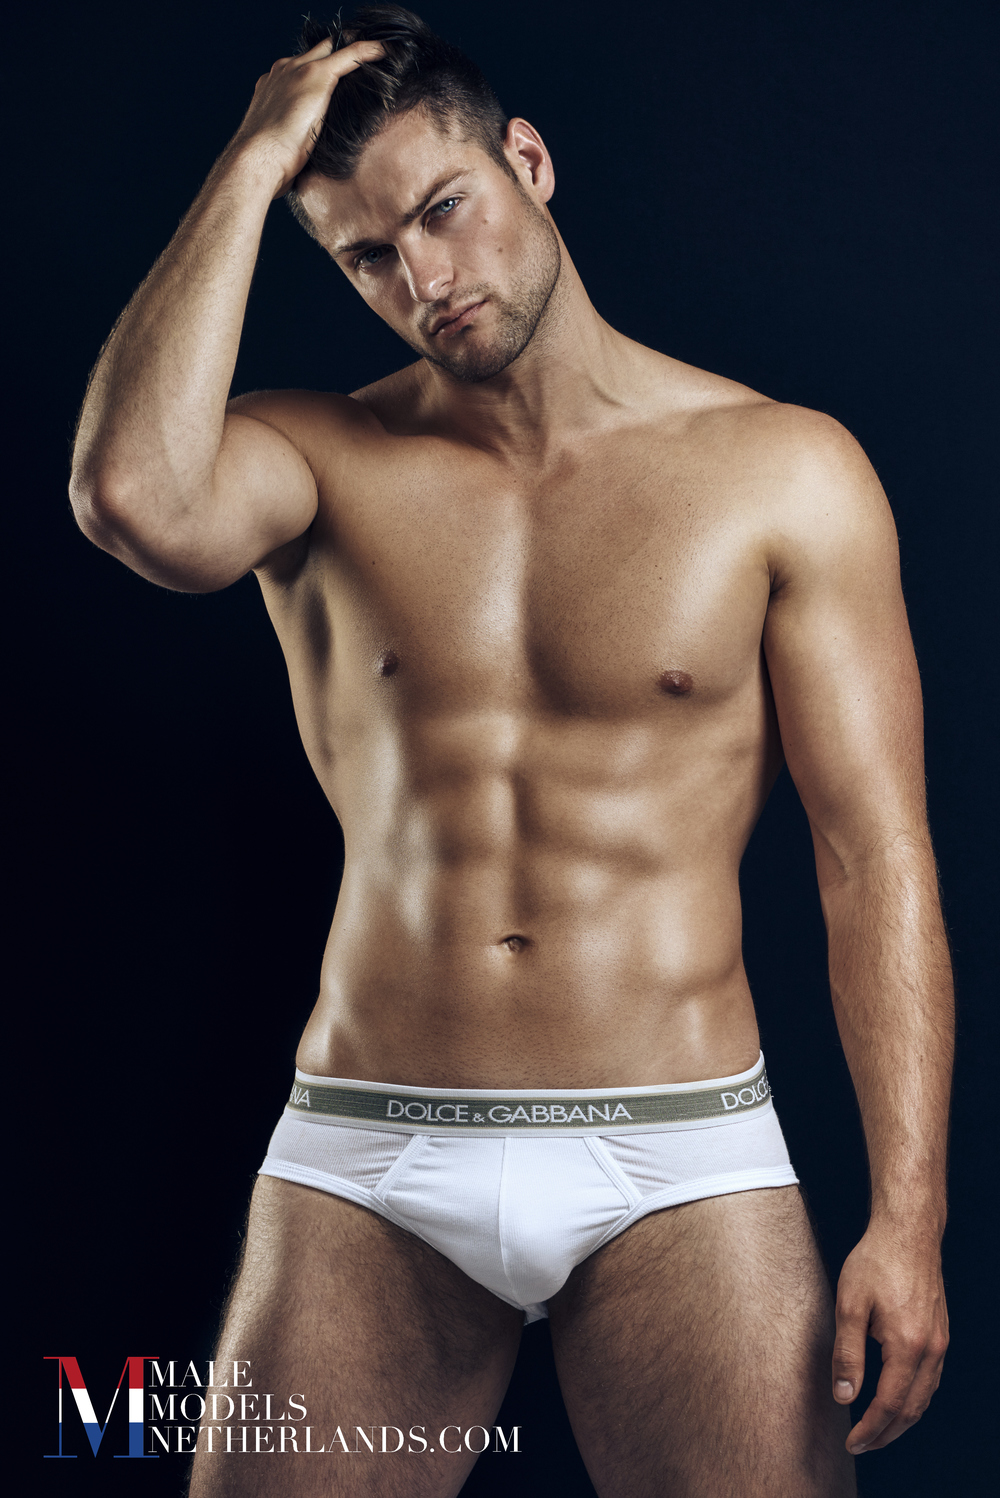 Bas-2-Male Models Netherlands-03.jpg